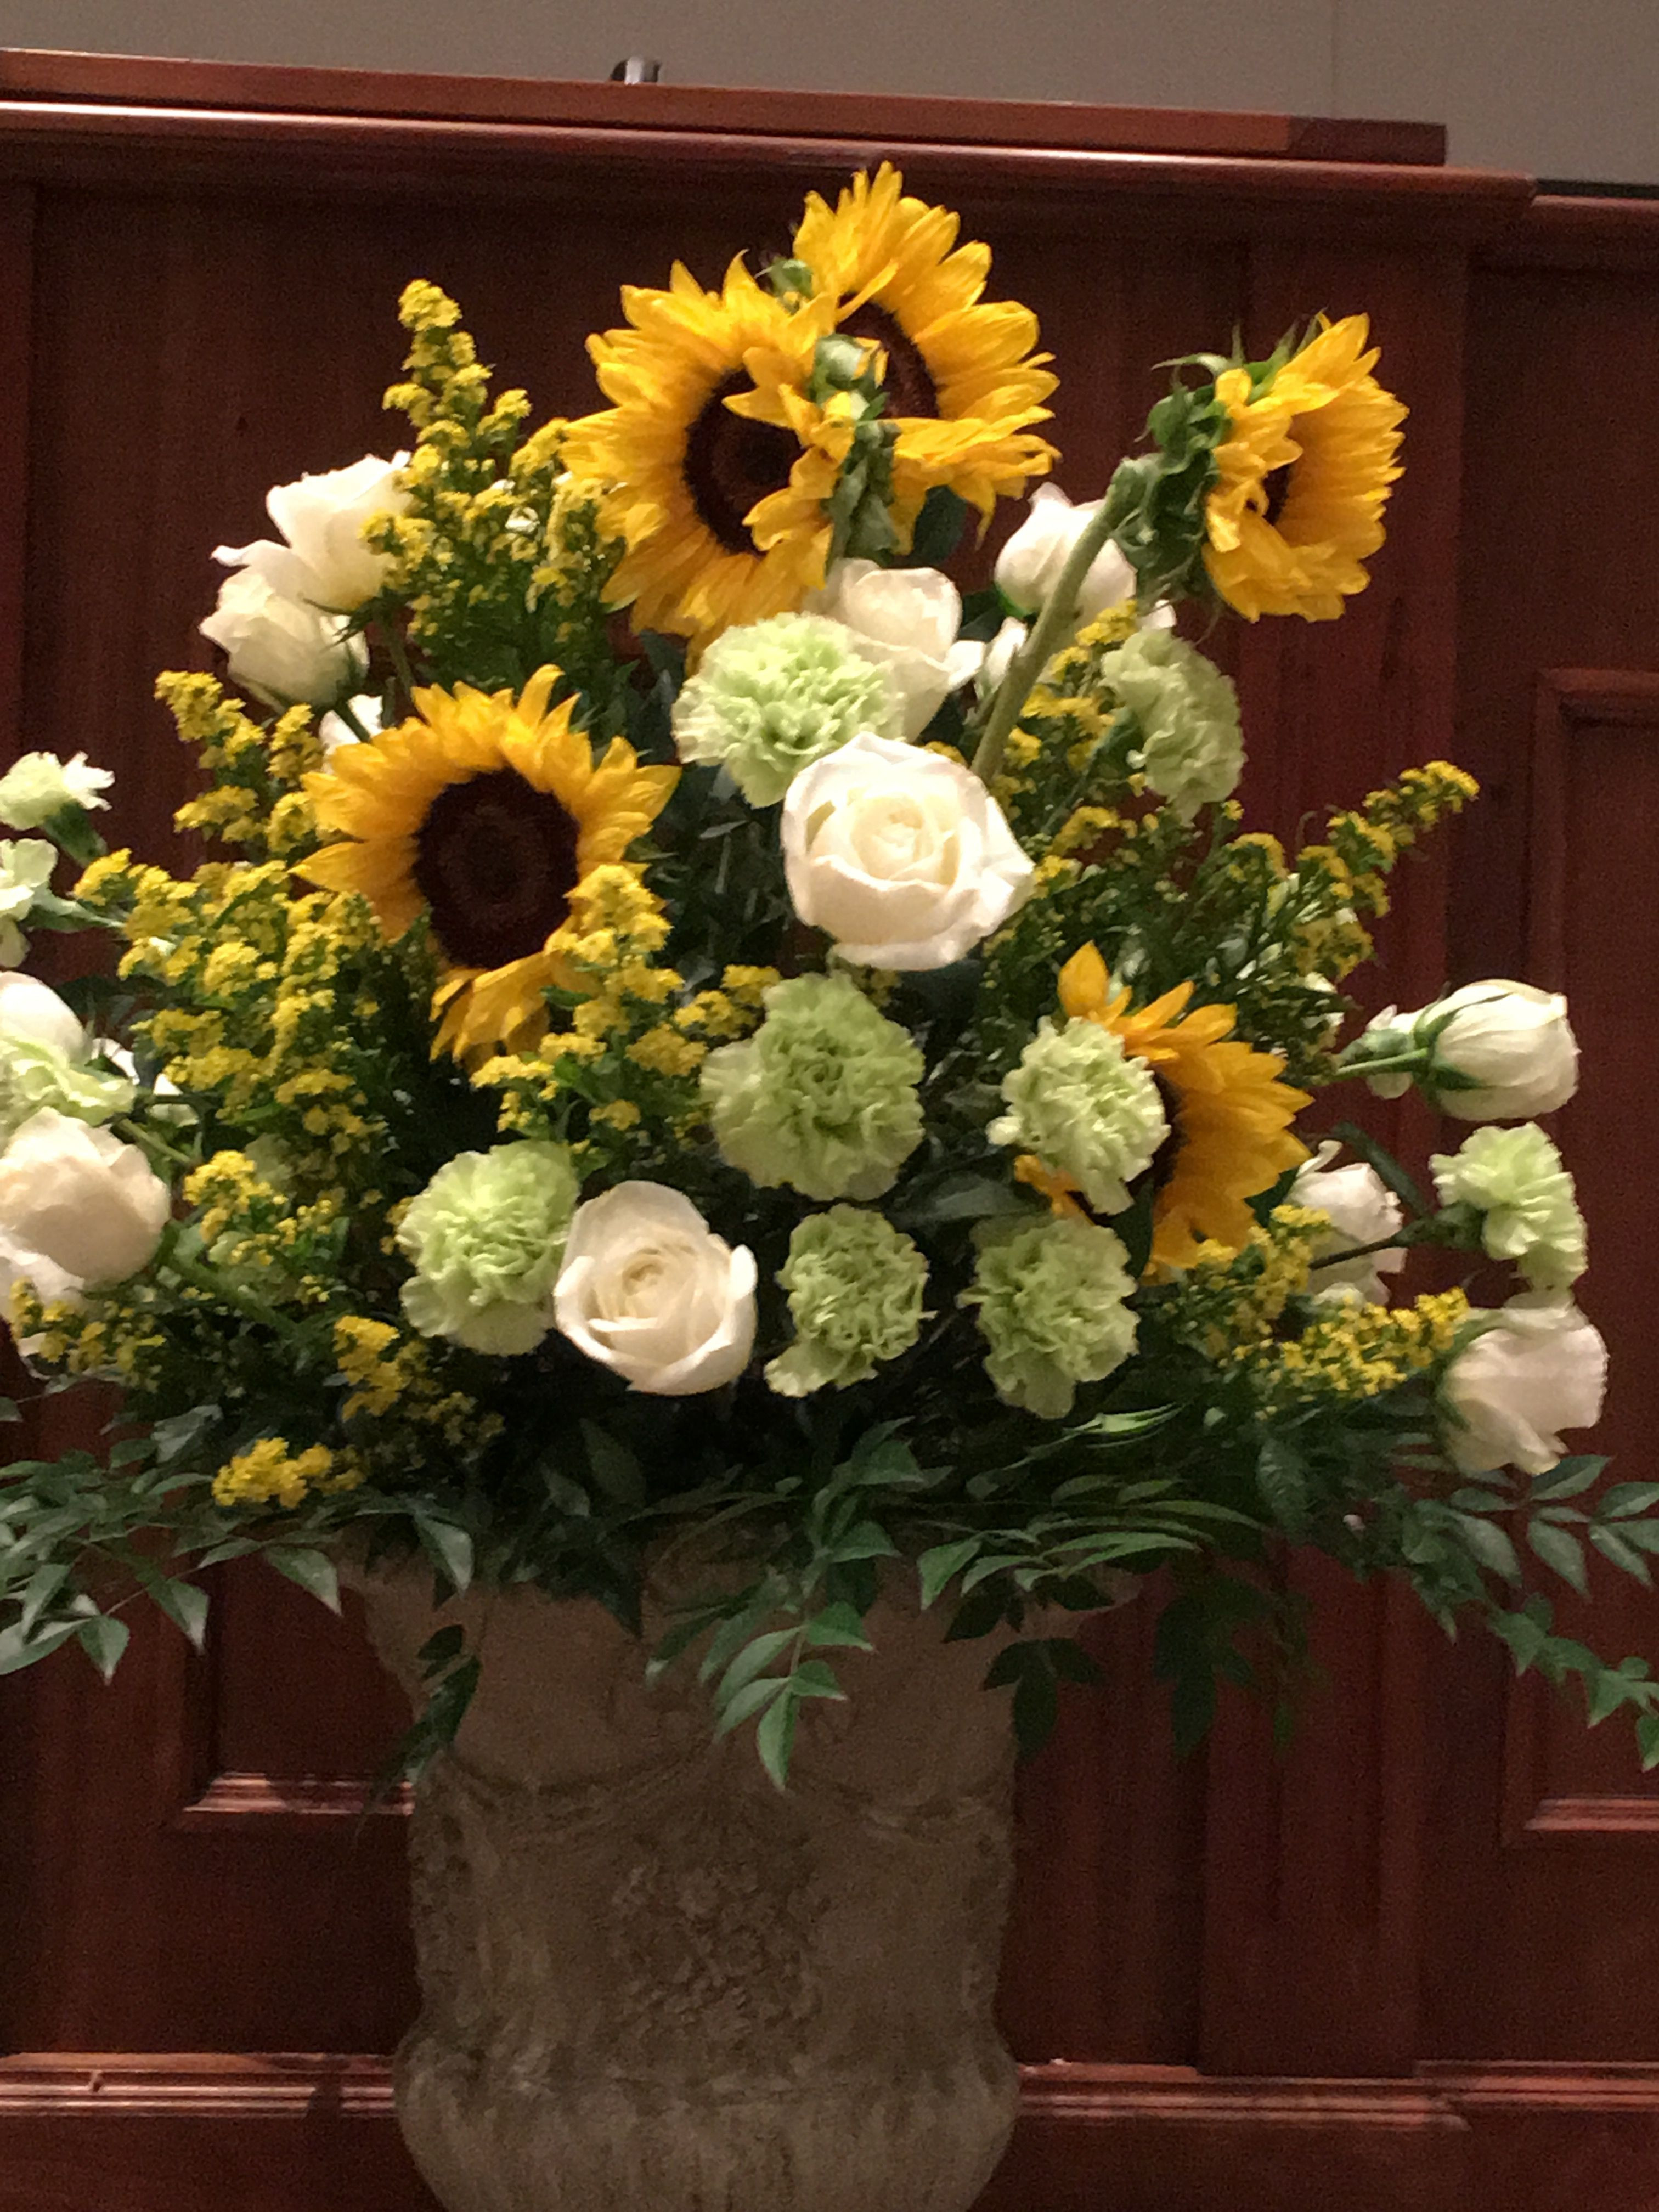 Formal flowers like roses look great with rustic informal Sunflowers